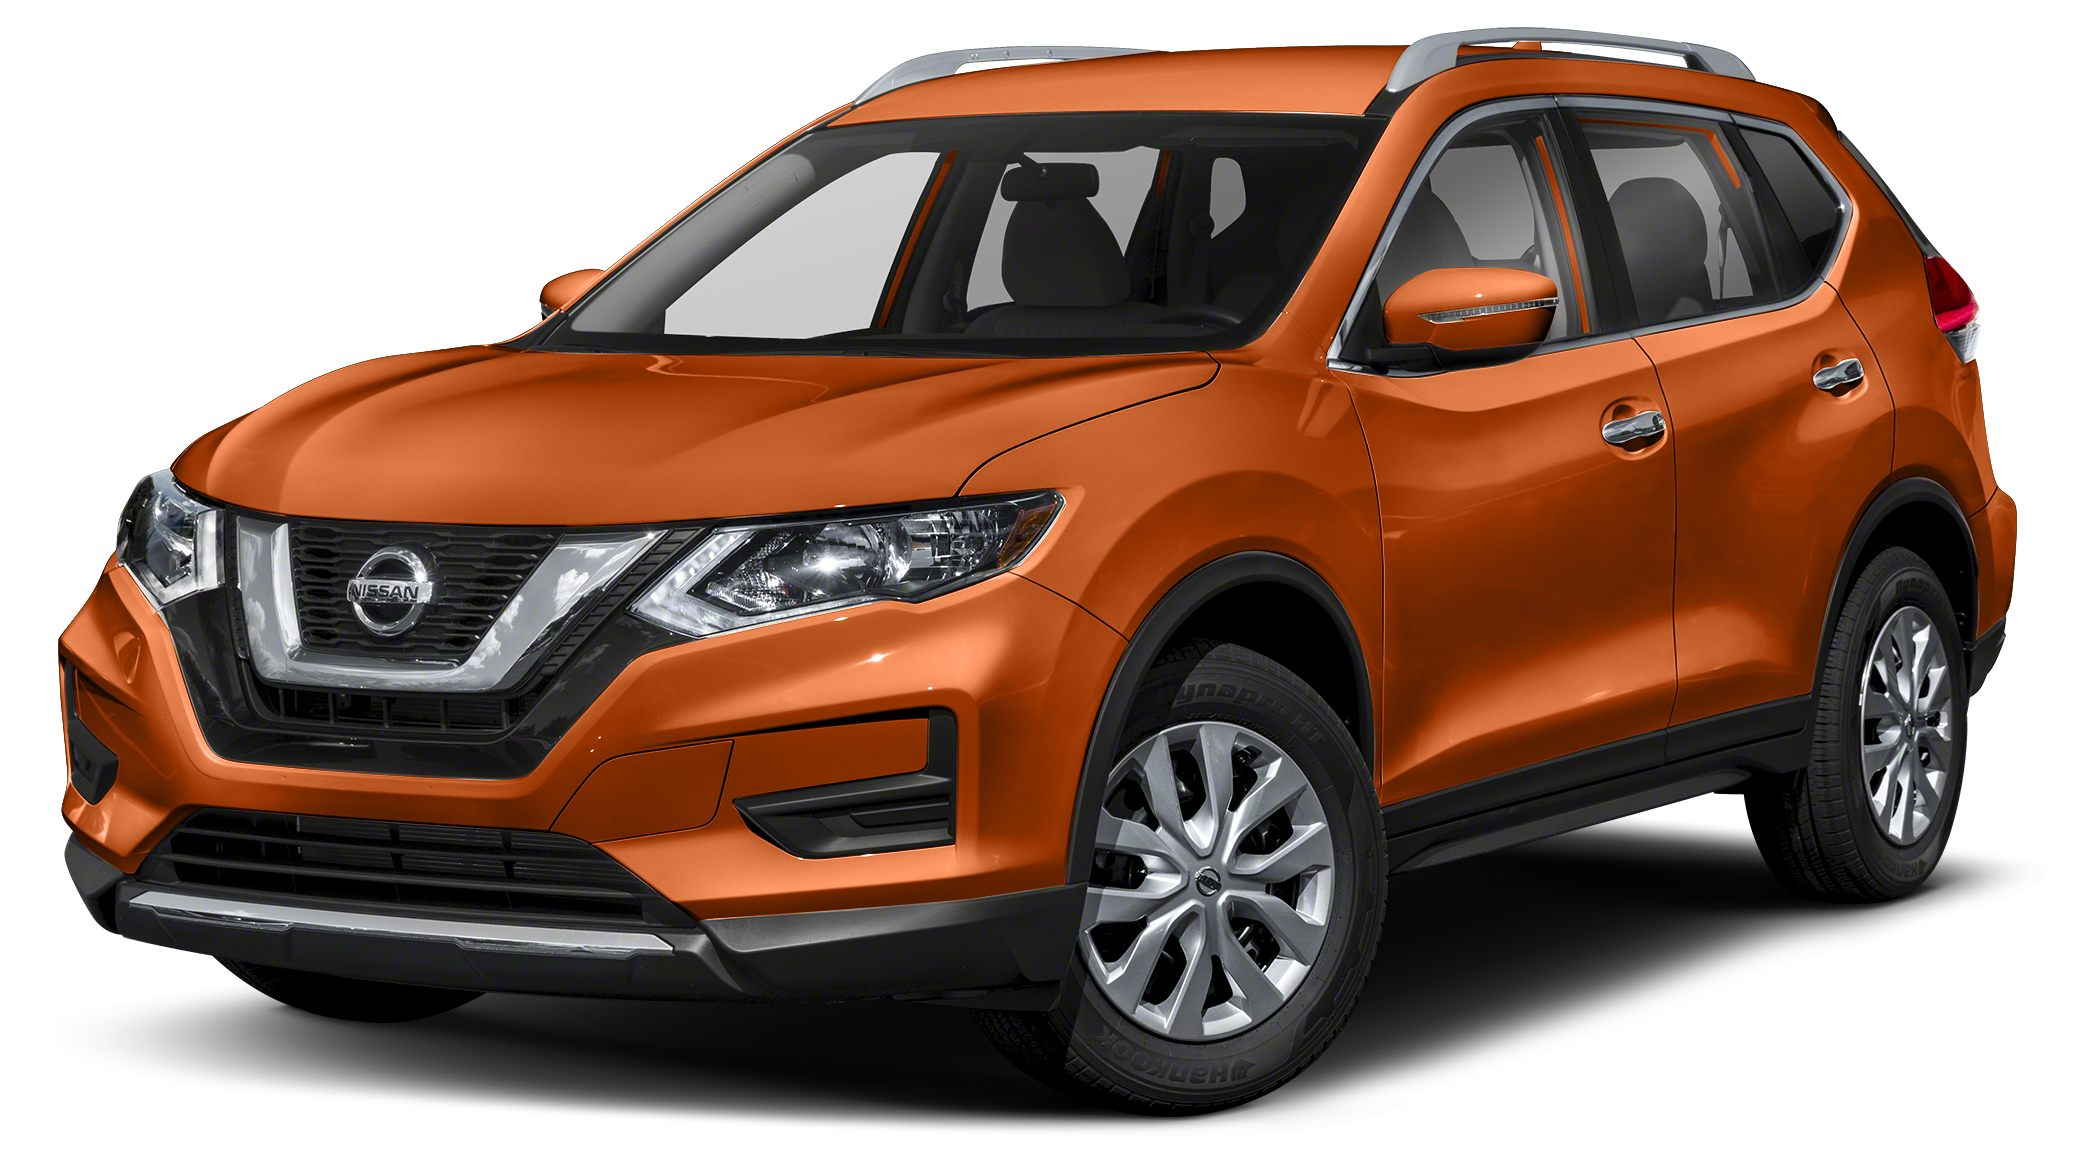 2017 Nissan Rogue S New Arrival -Great Gas Mileage- Bluetooth This 2017 Nissan Rogue S is Monar